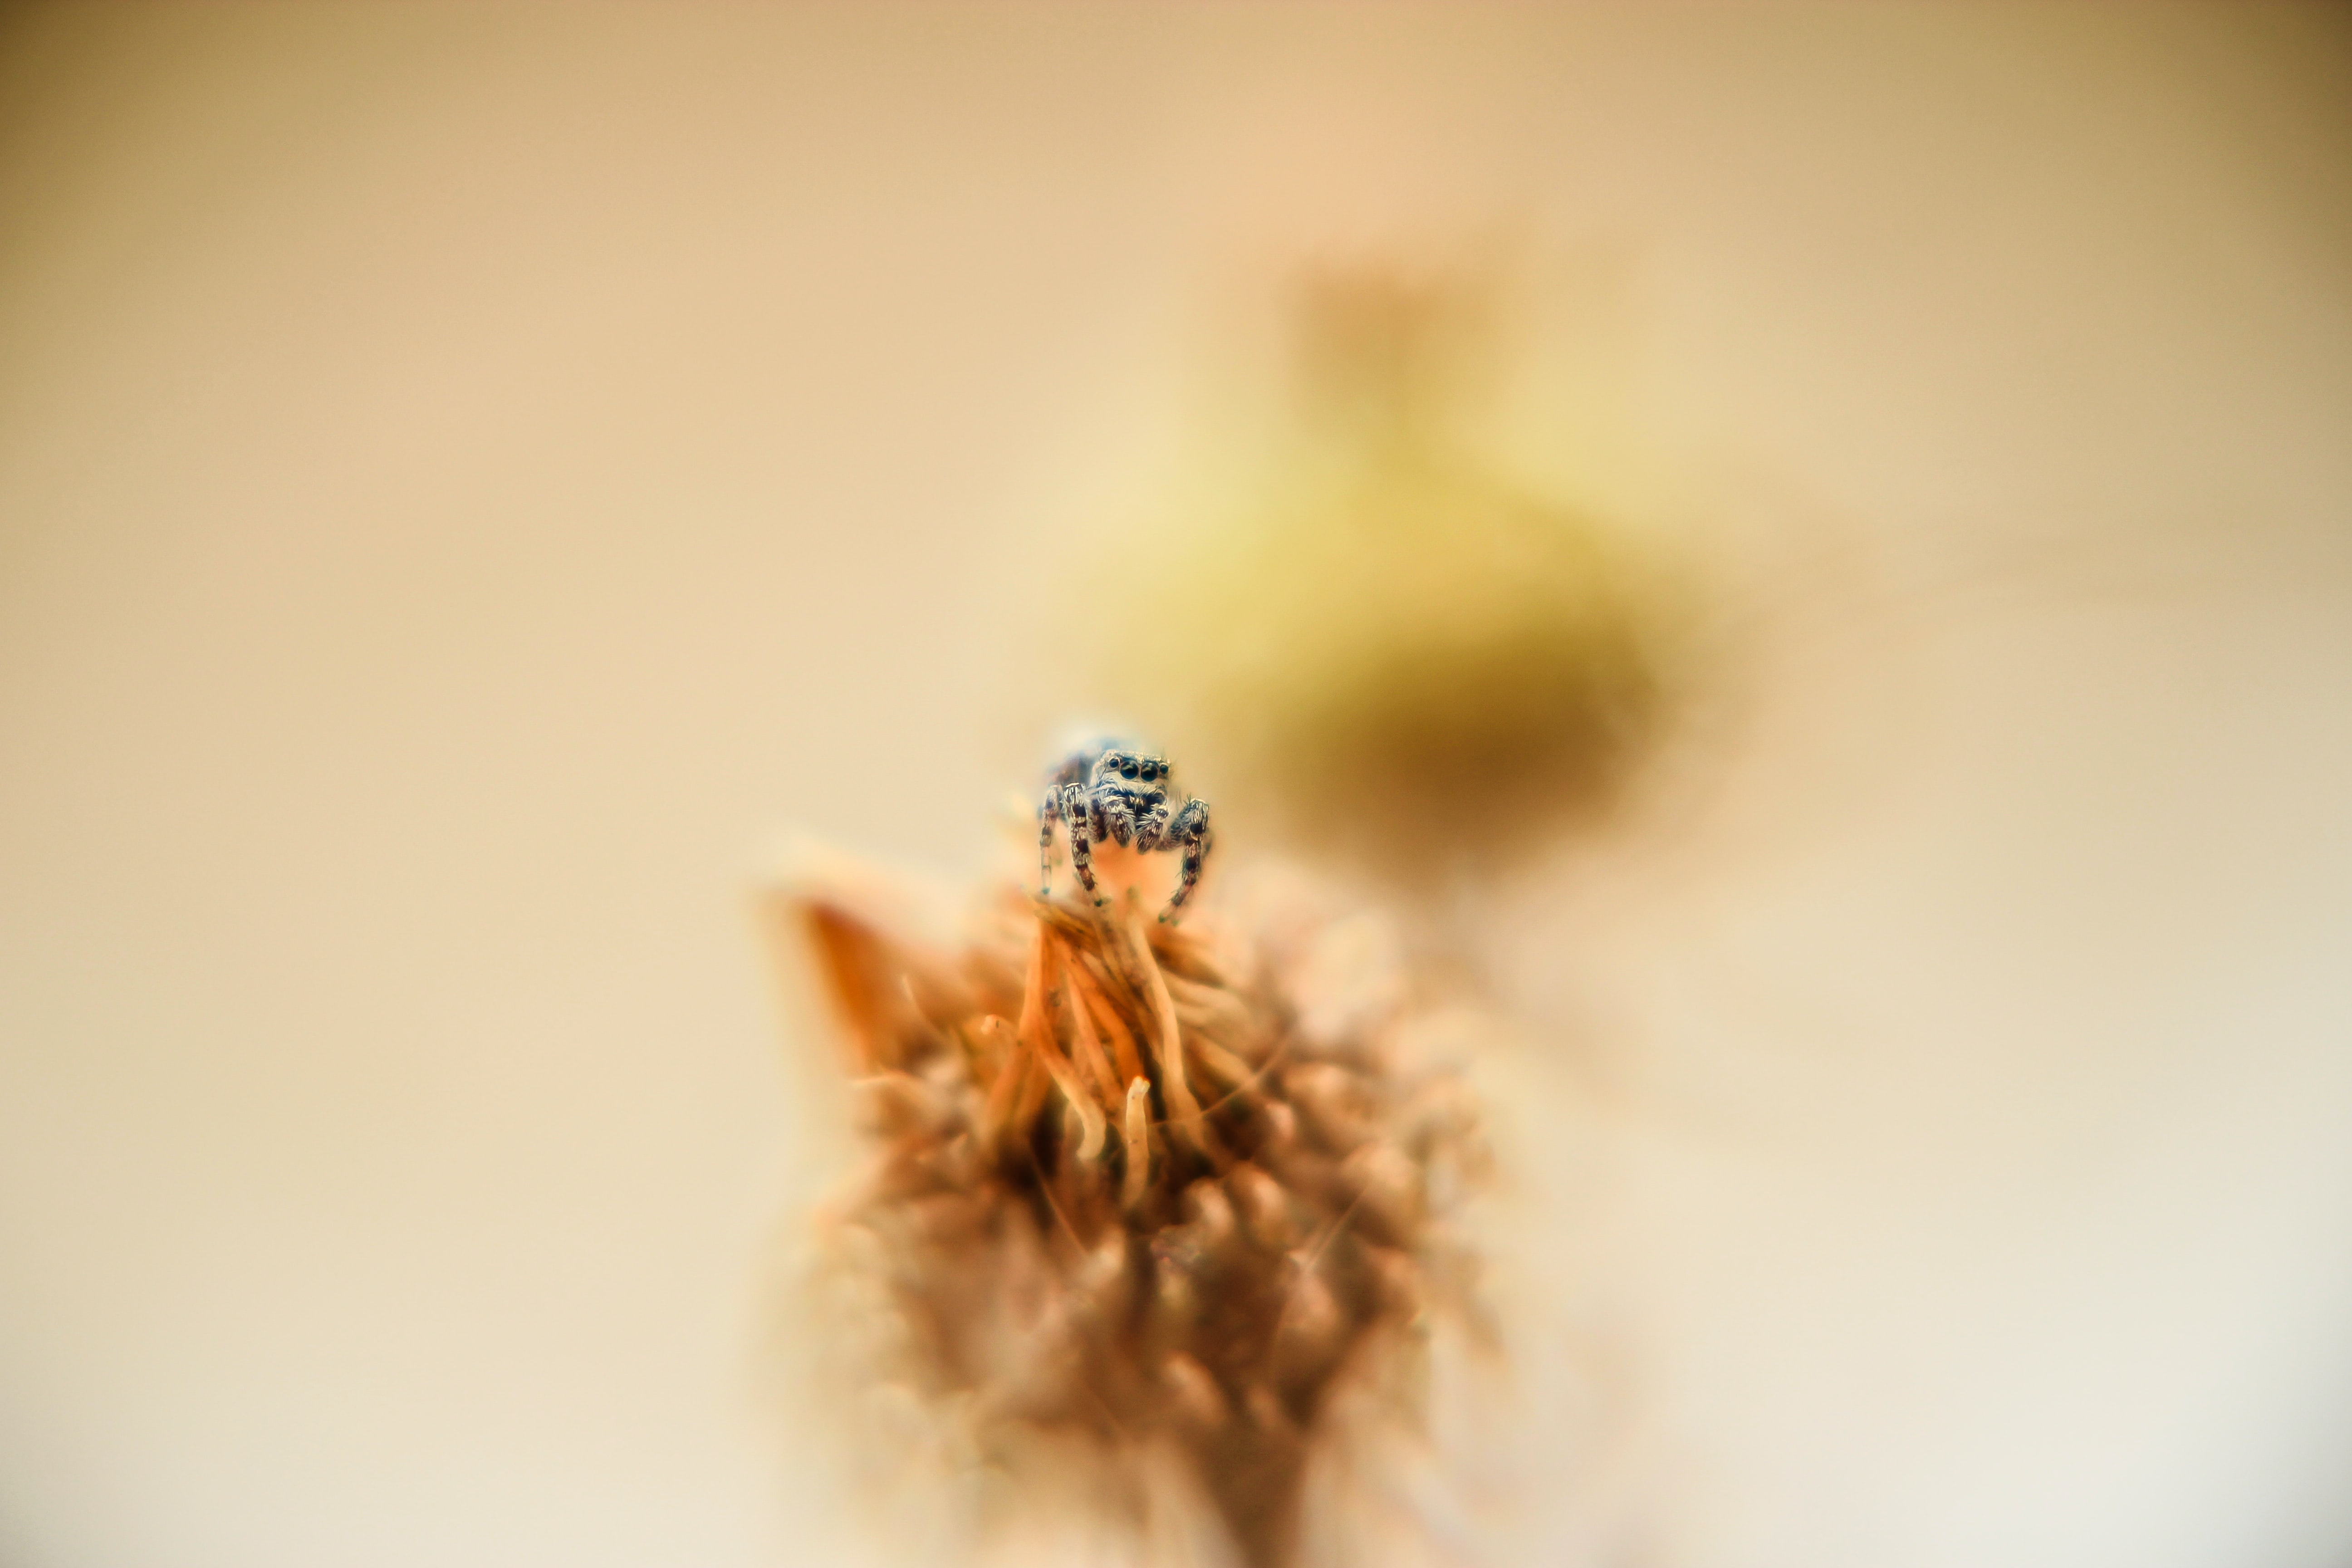 A macro shot of a spider on top of a flower